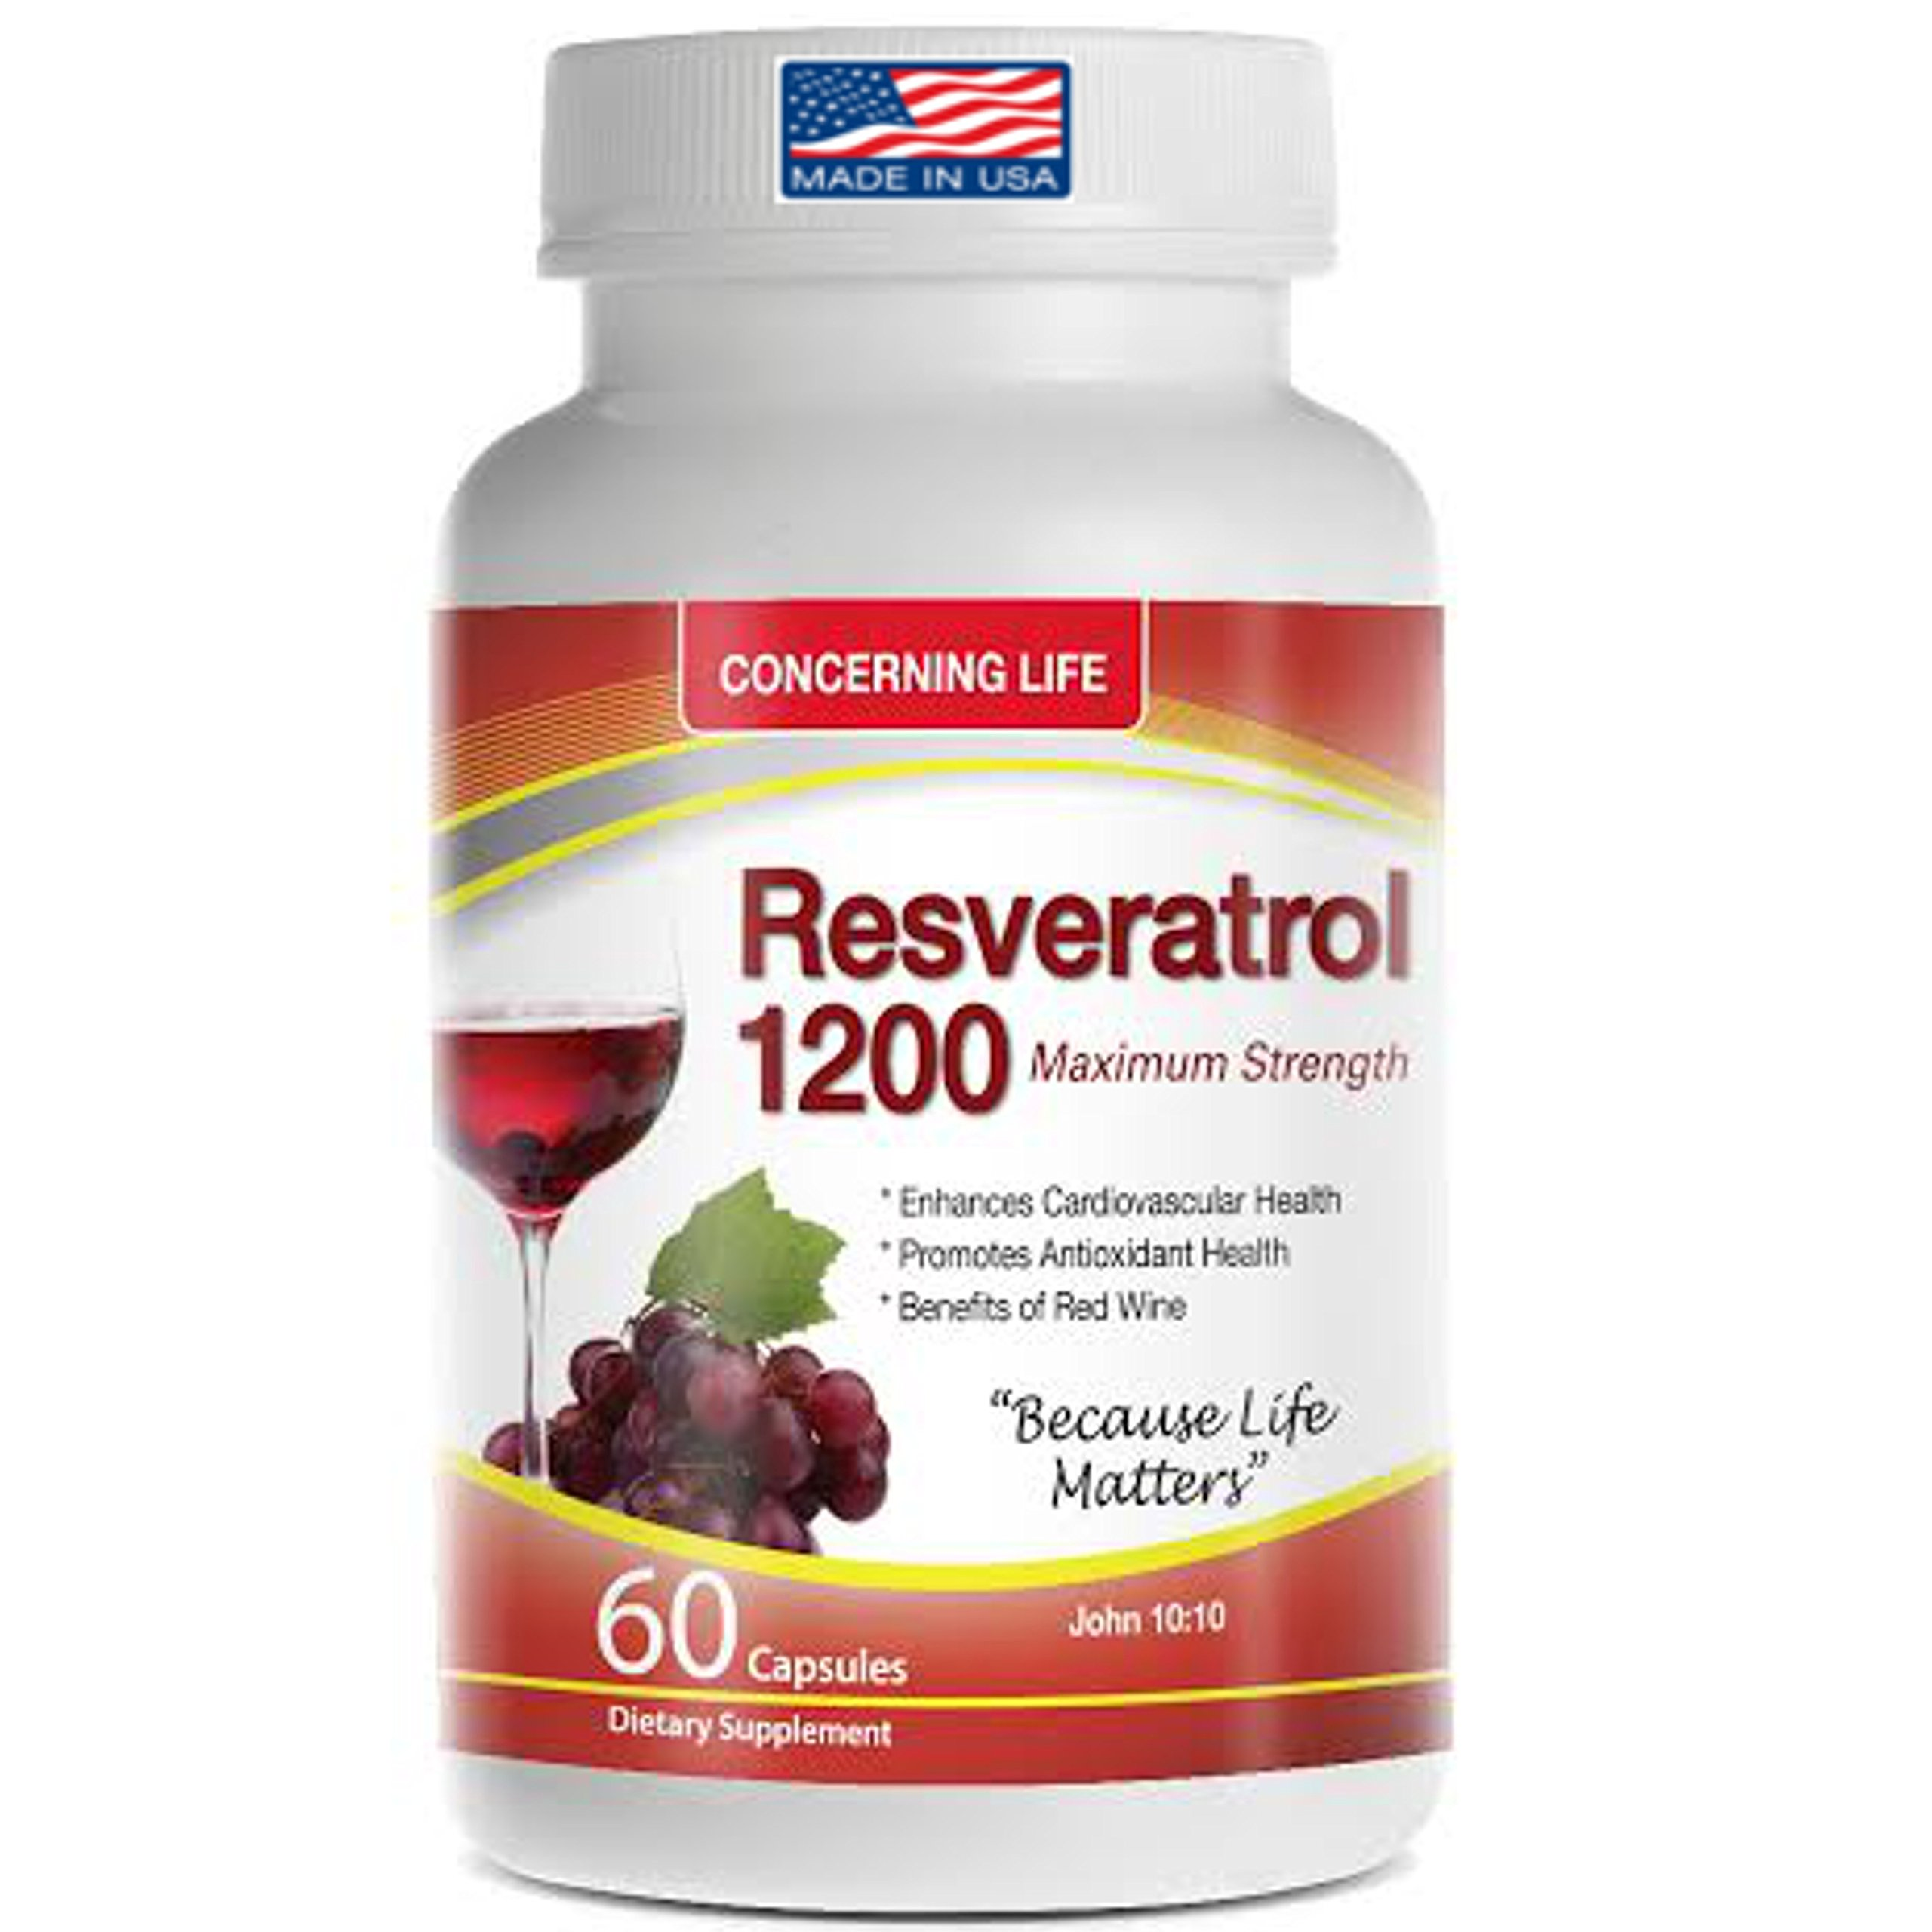 Resveratrol Supplement with Quercetin, Grape Seed Extract, Green Tea Resveratrol-1200mg 60 Capsules (1) by CONCERNING LIFE